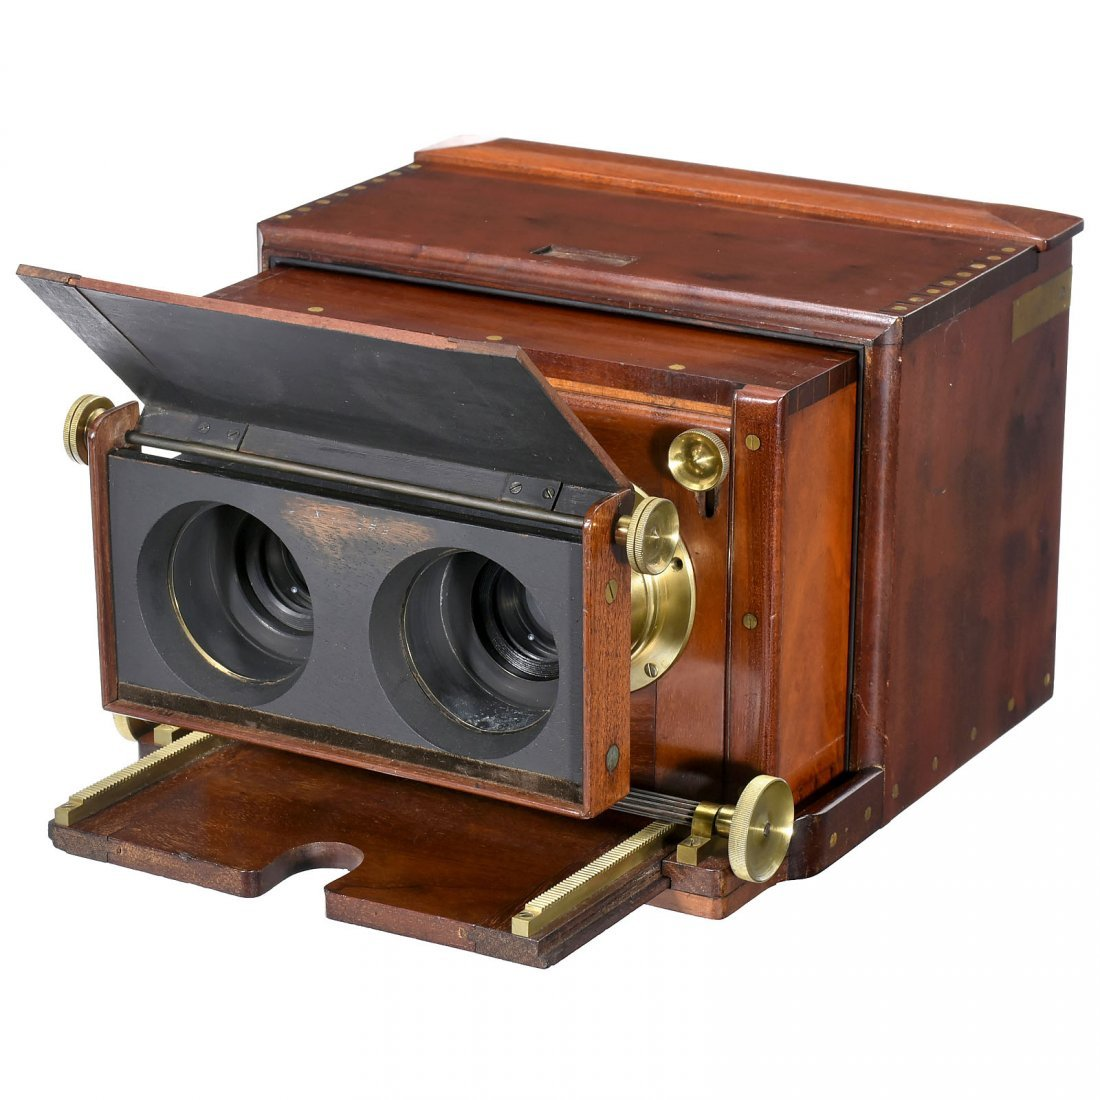 Stereo Wet-Plate Camera by Dallmeyer, c. 1860 - 2